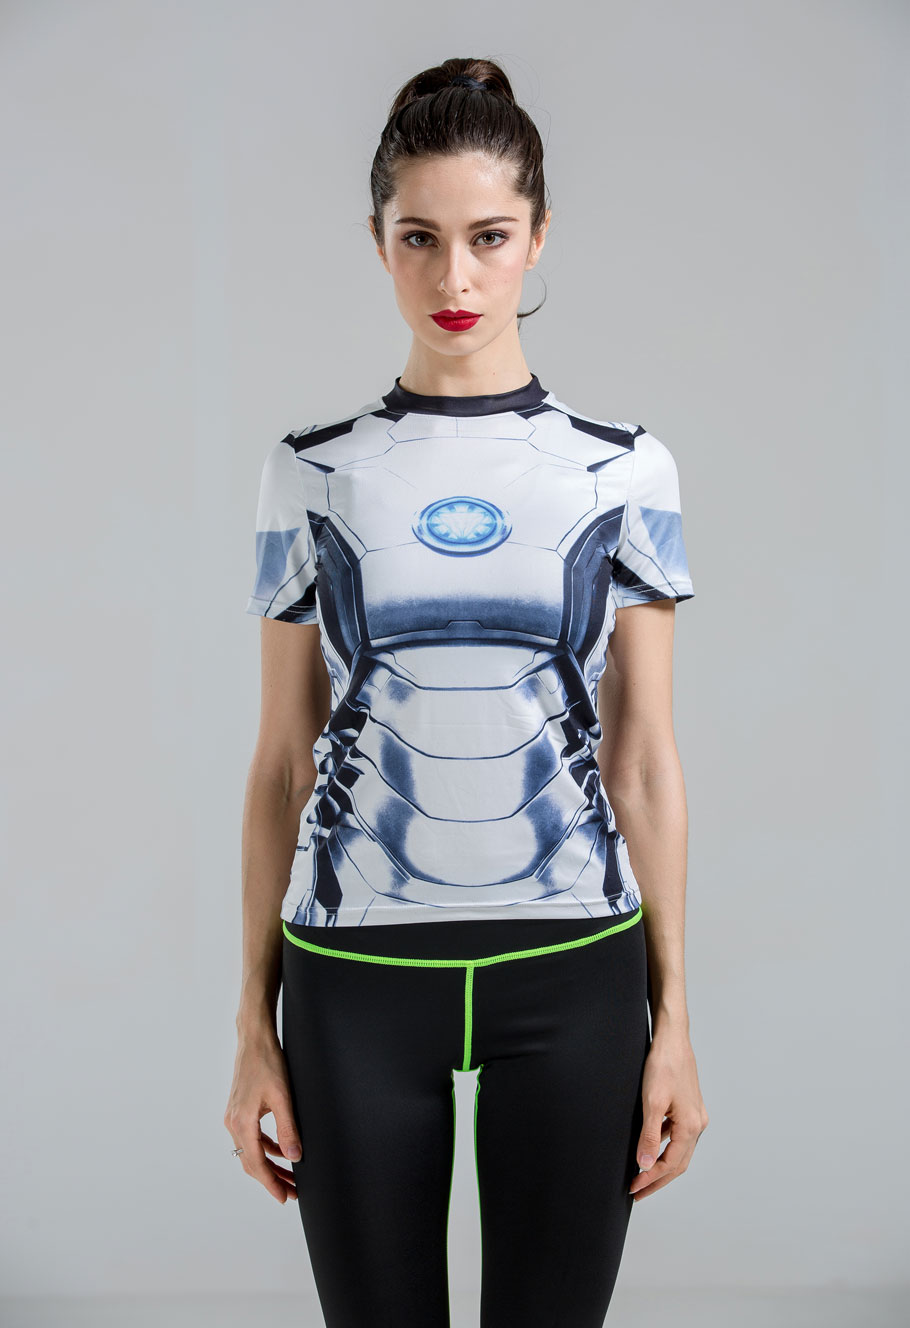 Women sports gym superman t shirt quick dry compression armour tee shirts women running lycra under tops tights poleras de mujer(China (Mainland))